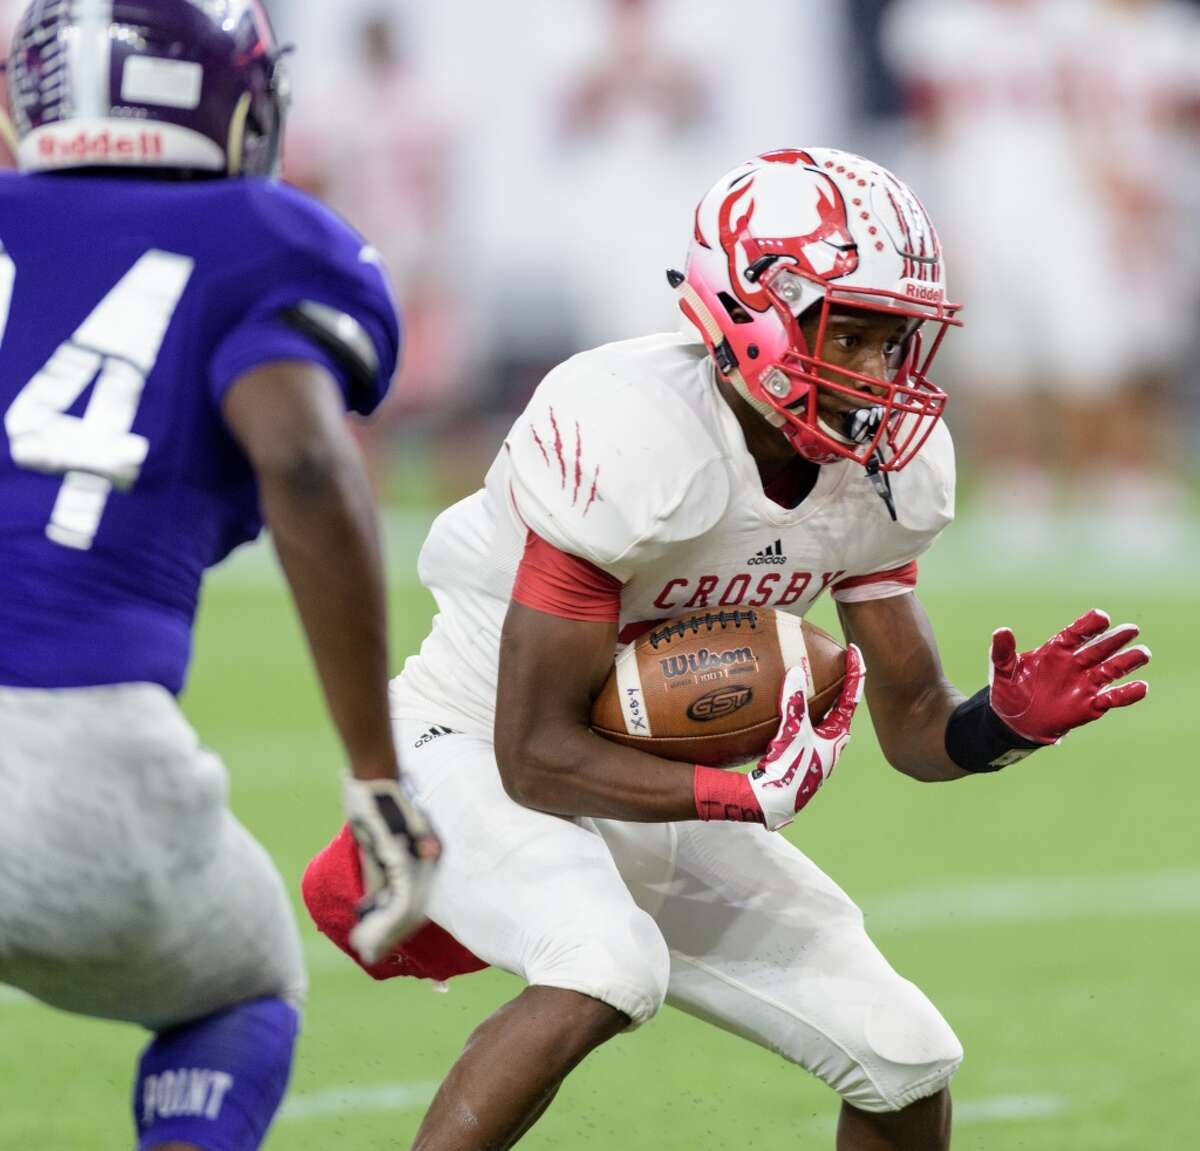 Craig Williams (21) of the Crosby Cougars runs up the middle in the first half against the Ridge Point Panthers in a high school football game on Saturday, November 21, 2015 at NRG Stadium.